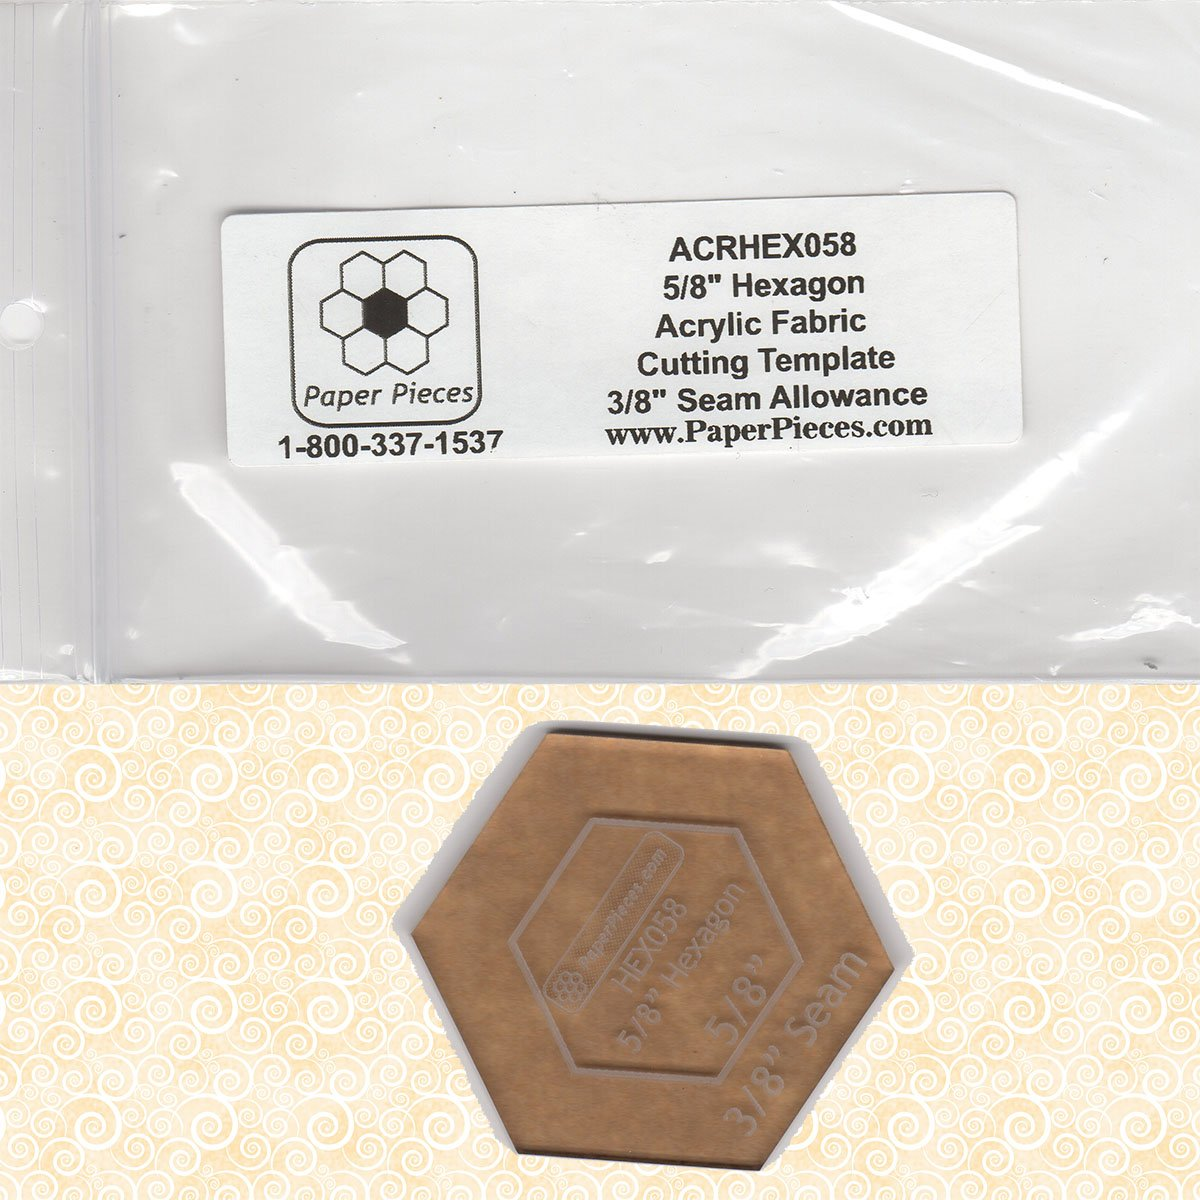 P3-375 Acrylic 5/8 Hexagons Template